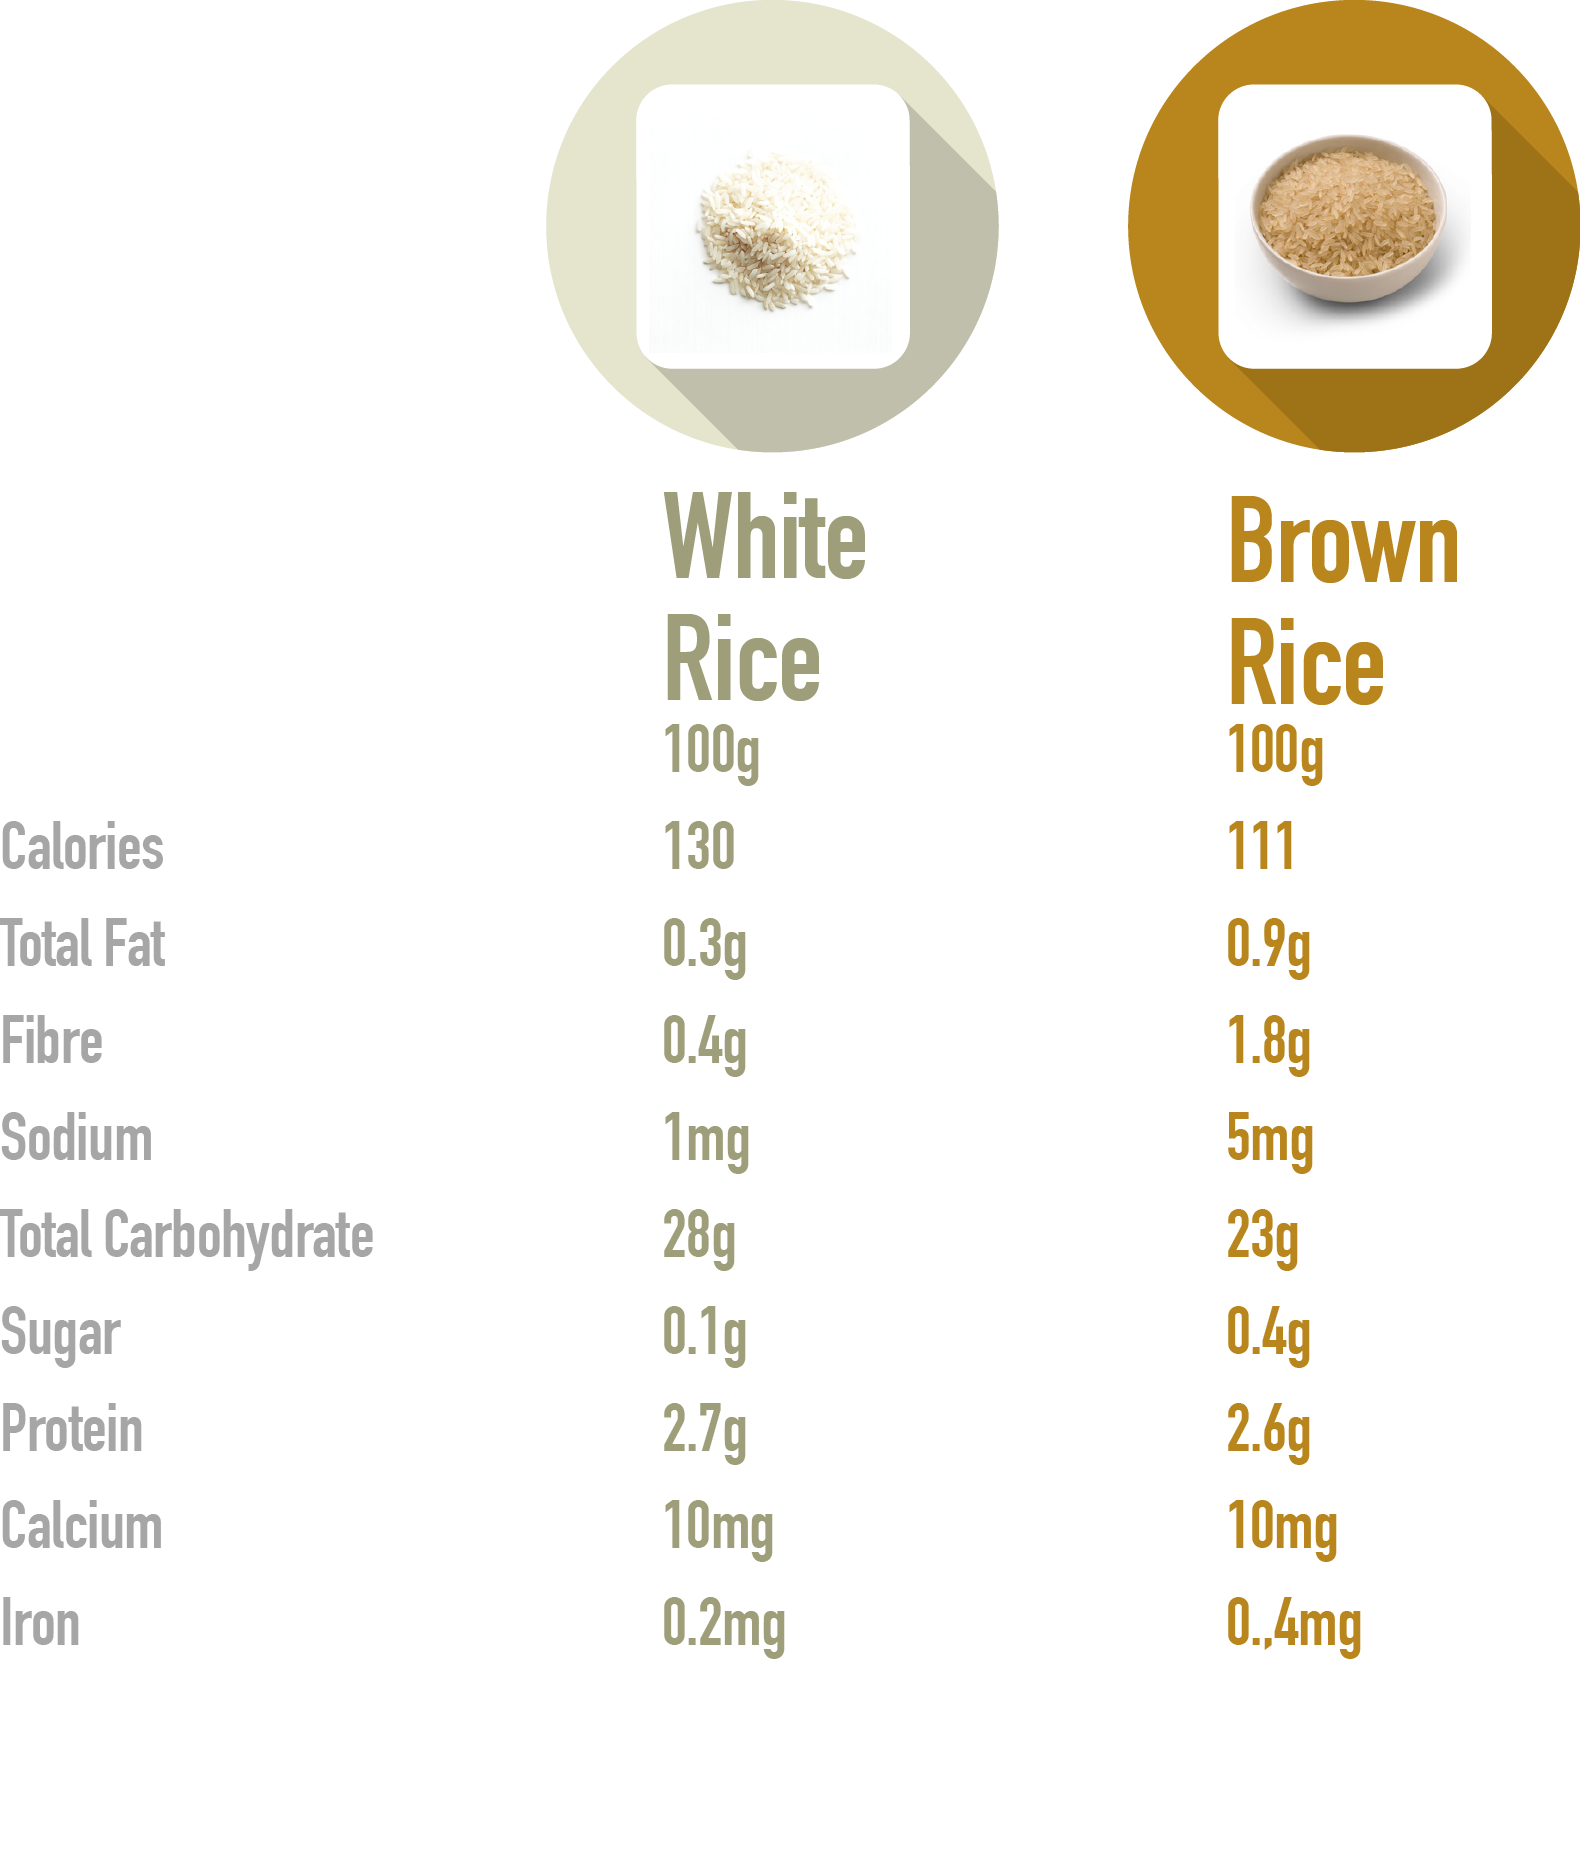 Brown-rice-and-white-rice-nutritional-values